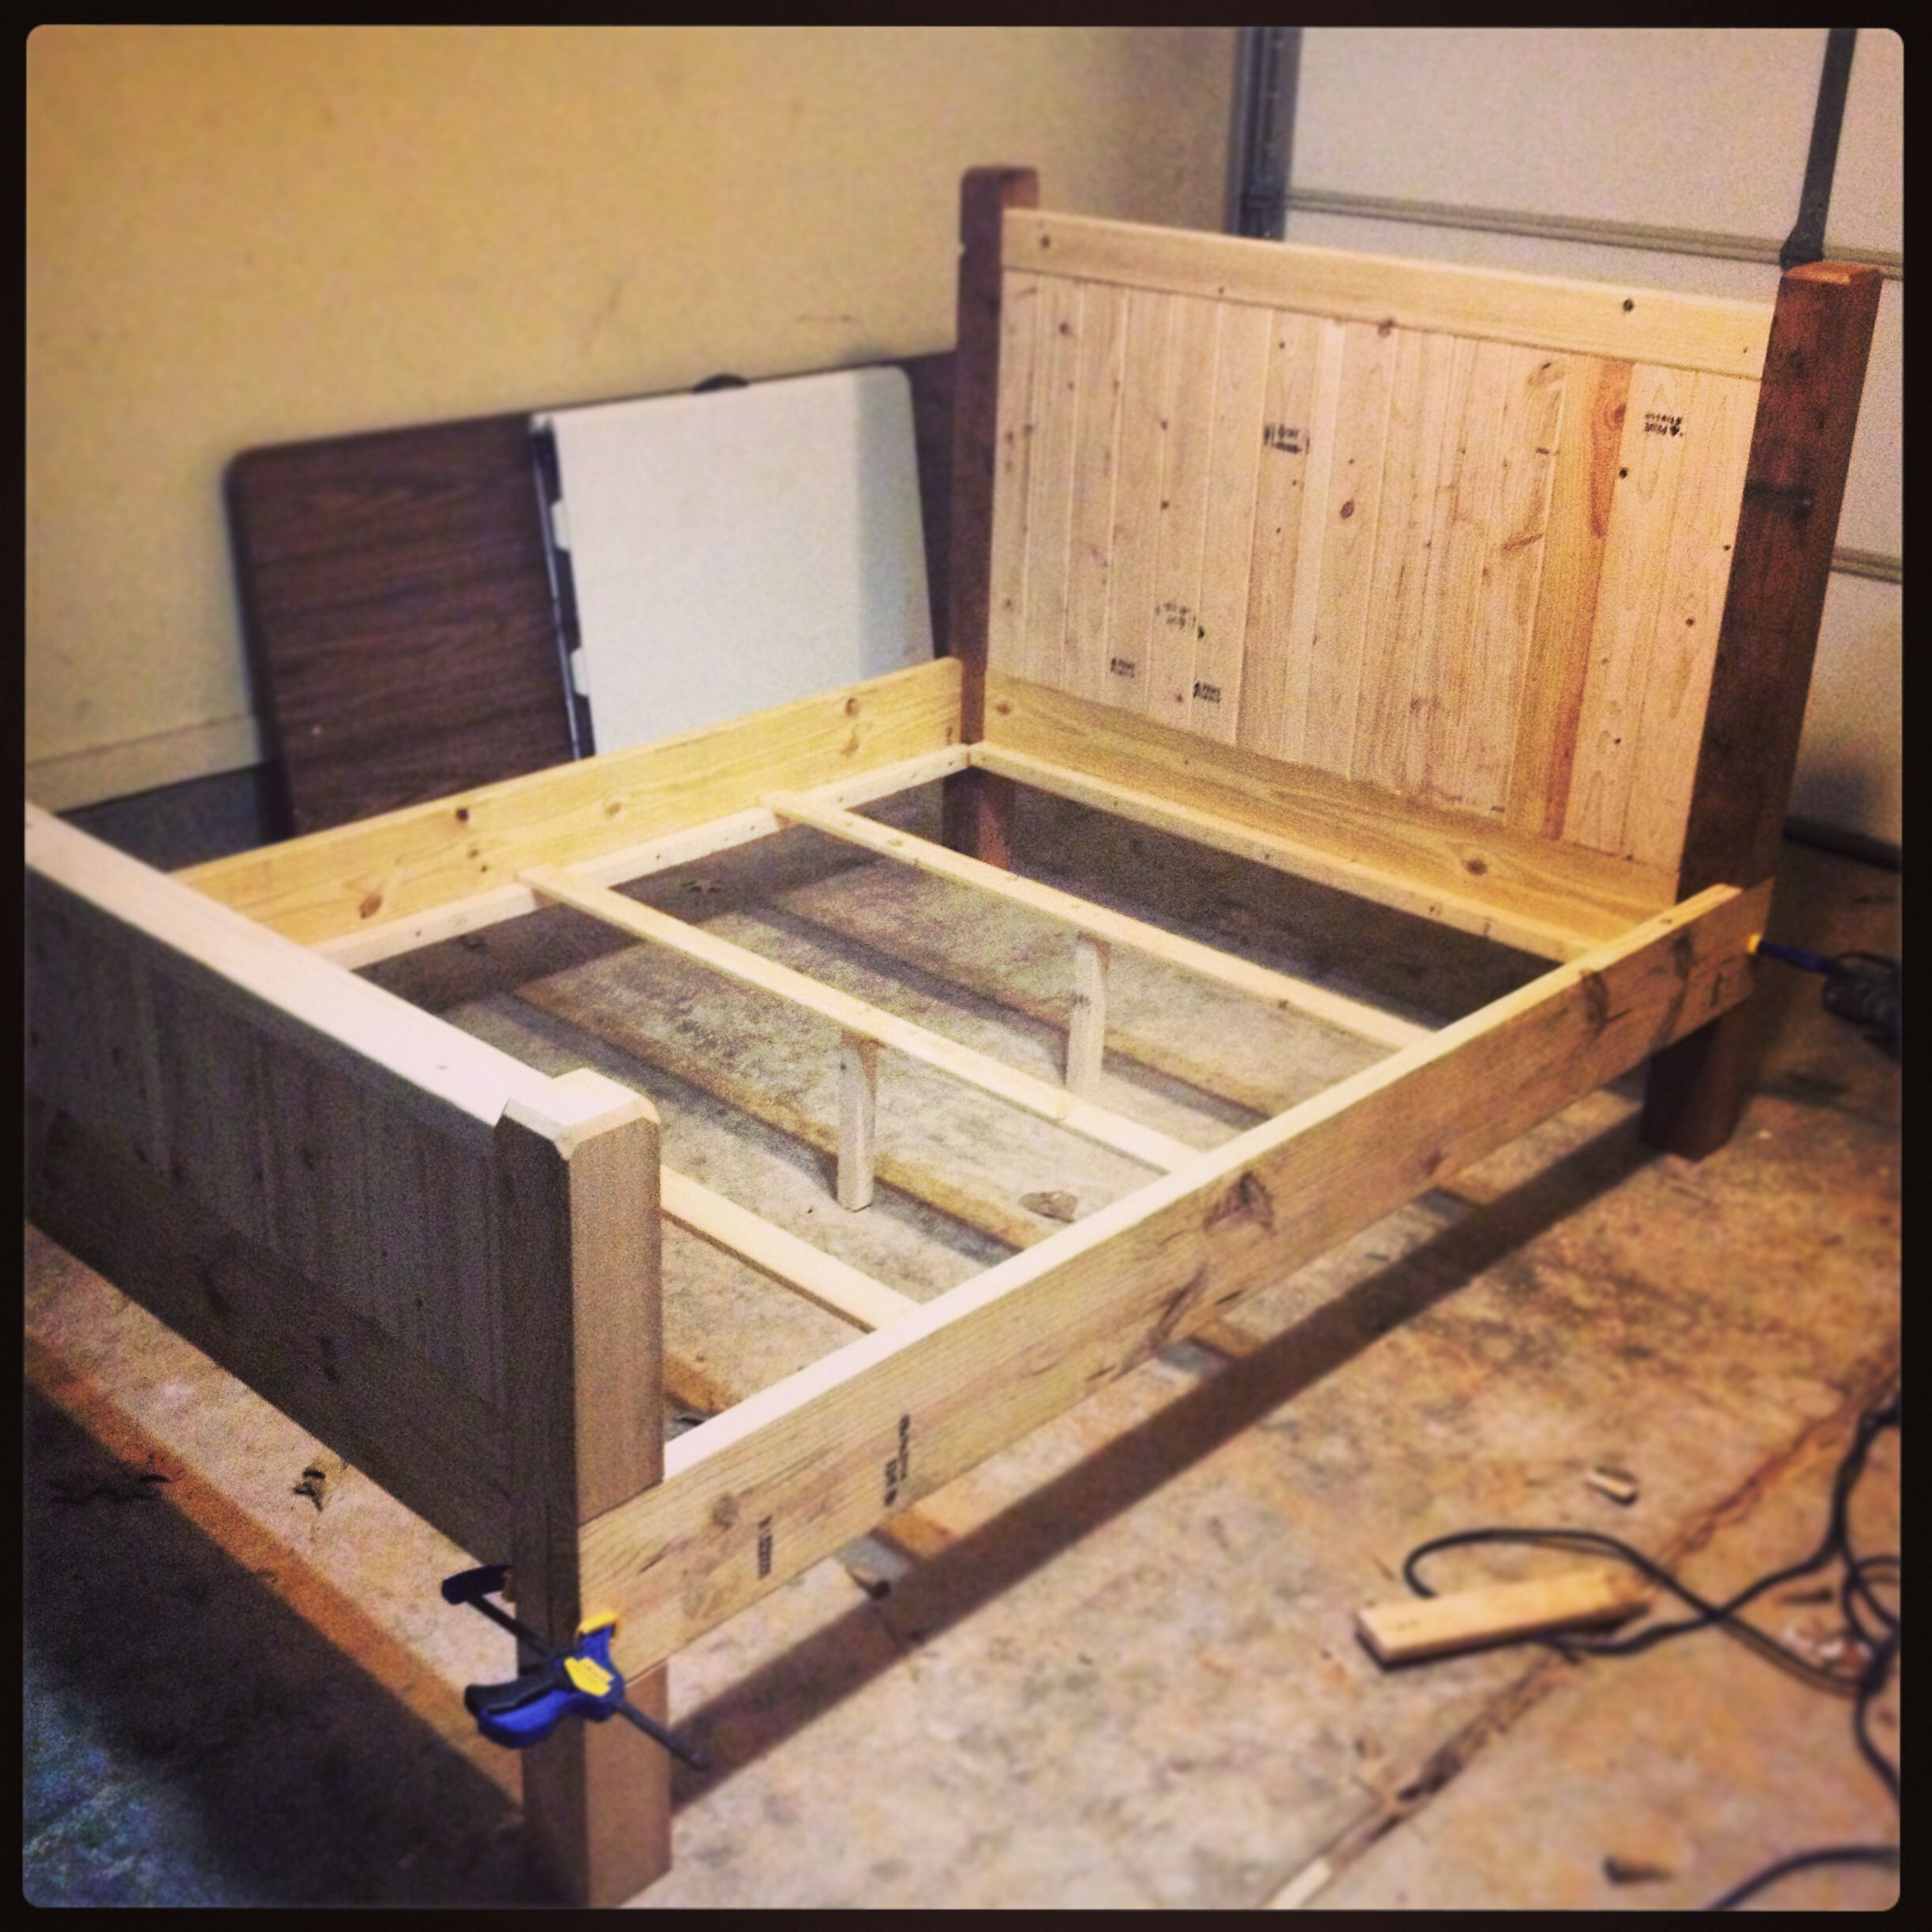 Diy full size bed frame almost finished made with 2x4s for Bed frame plans